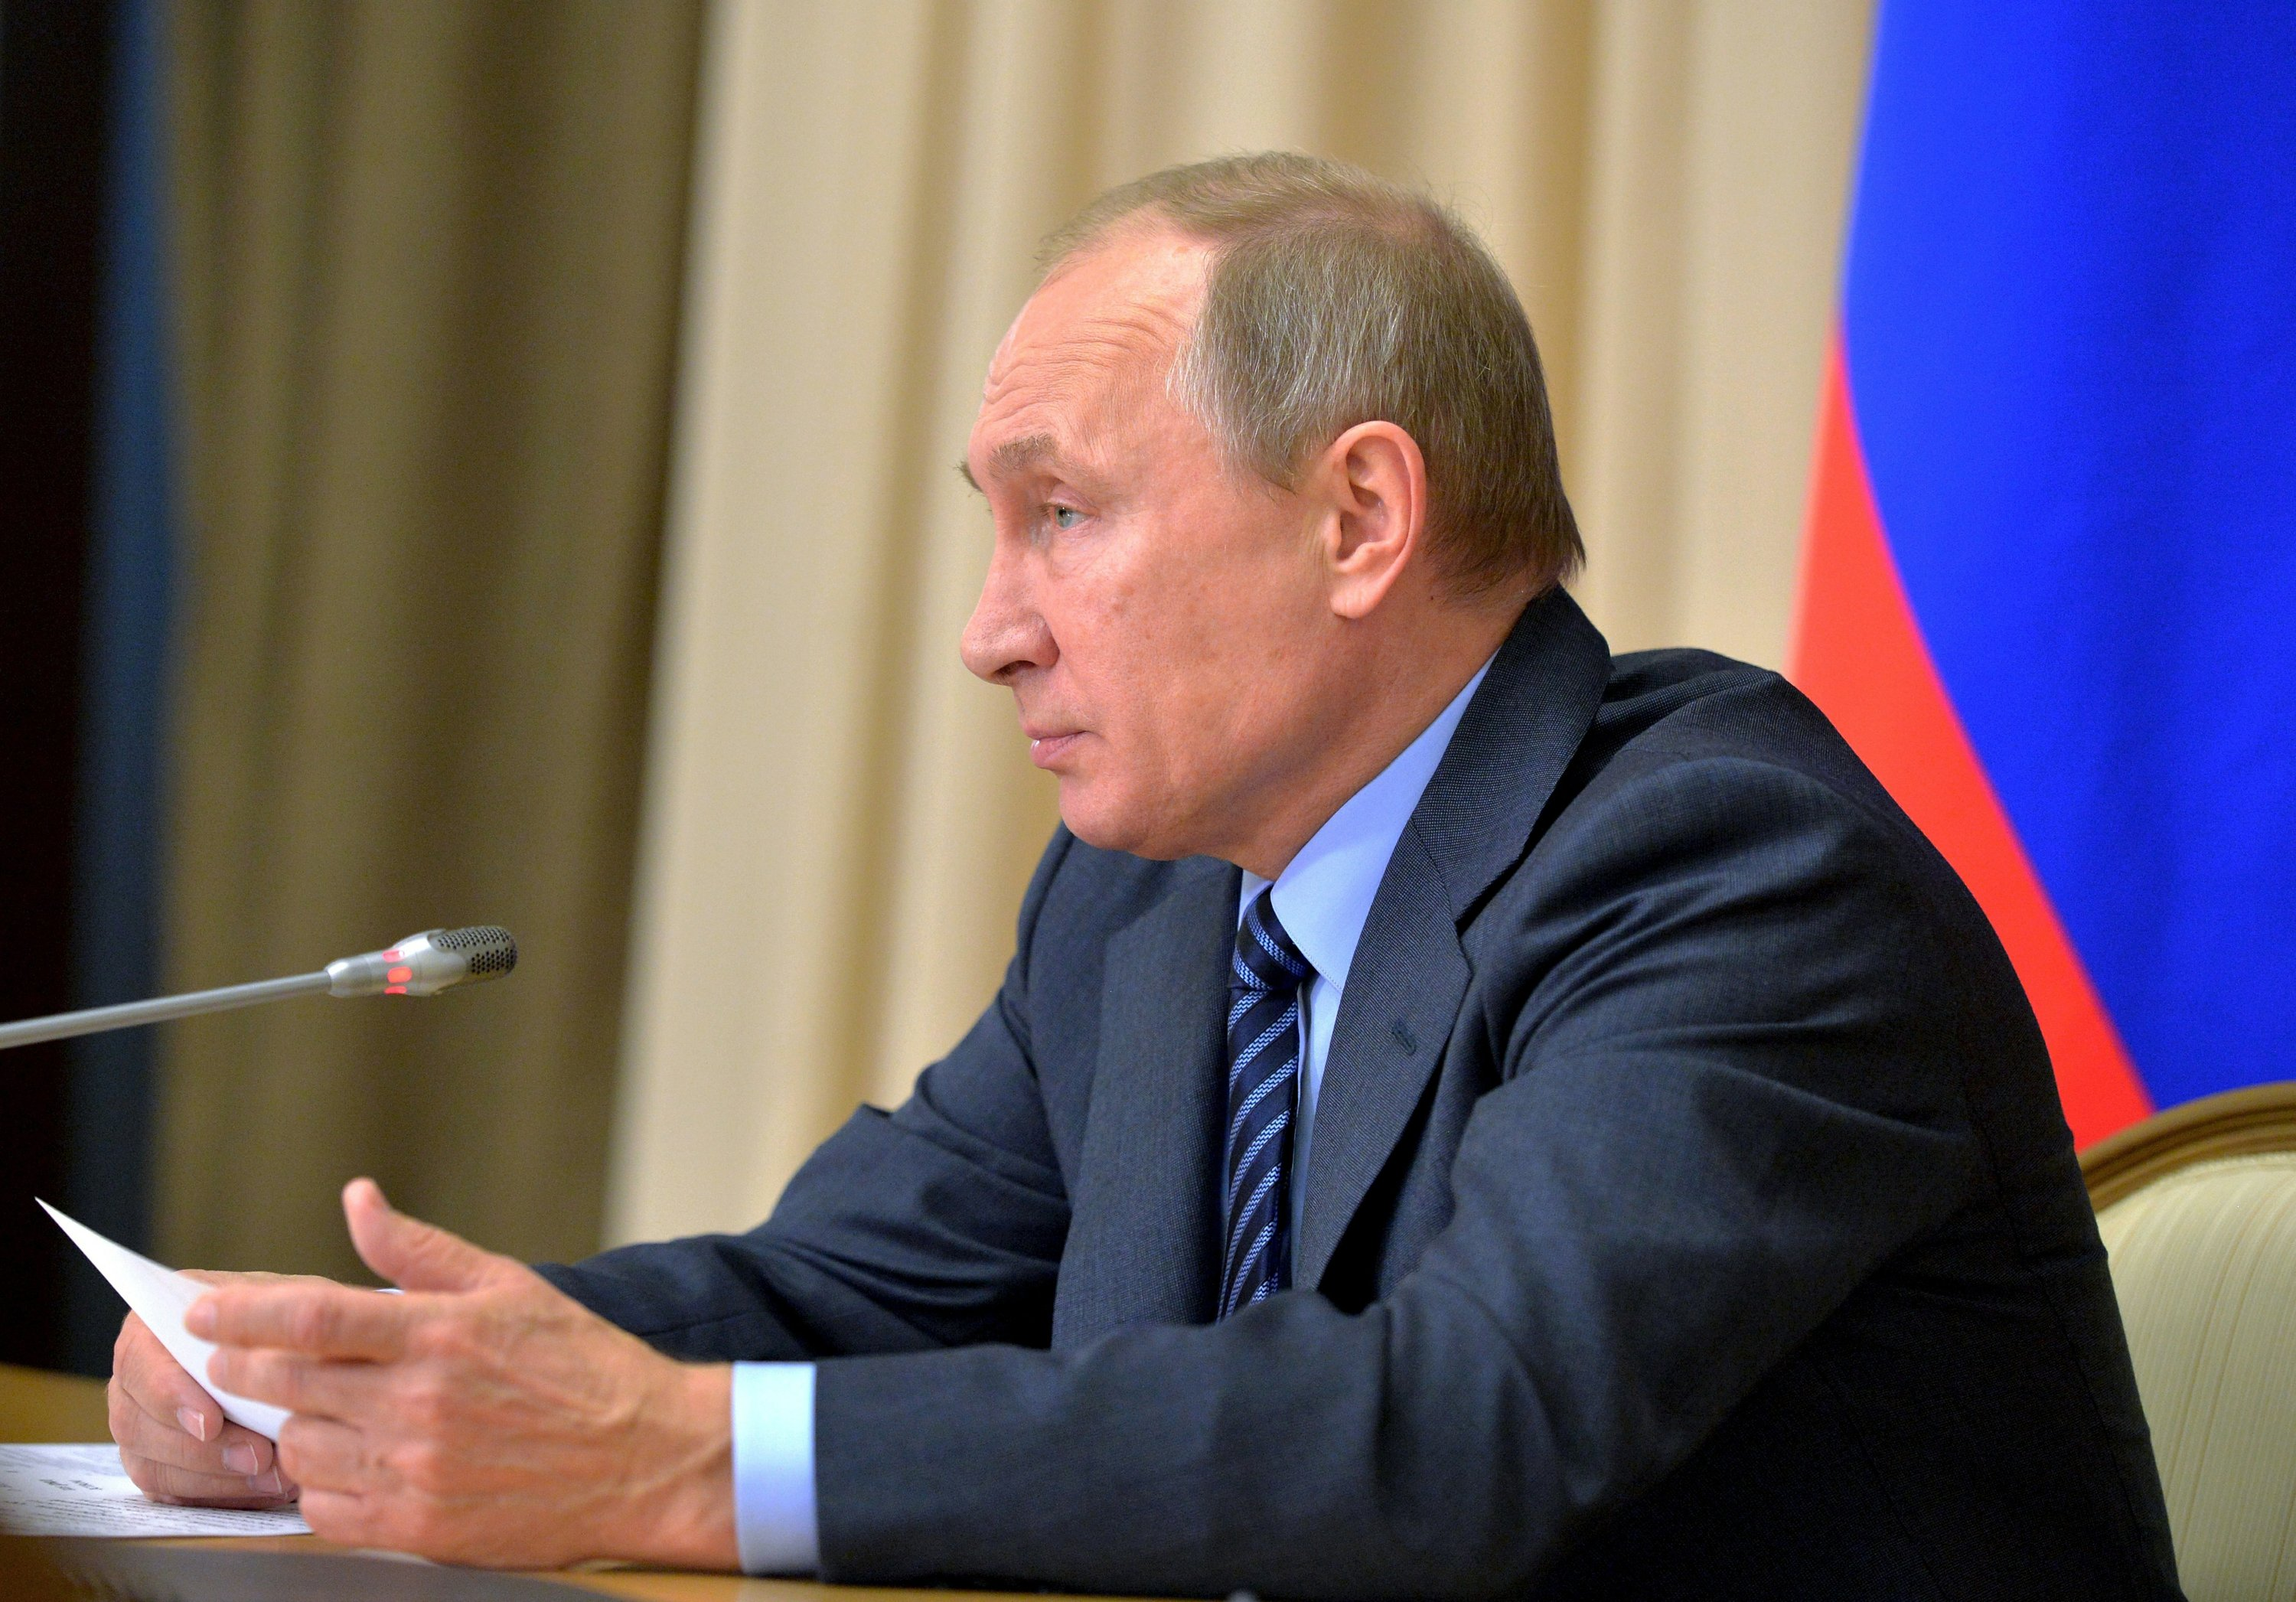 Putin says Russia works to develop new weapons